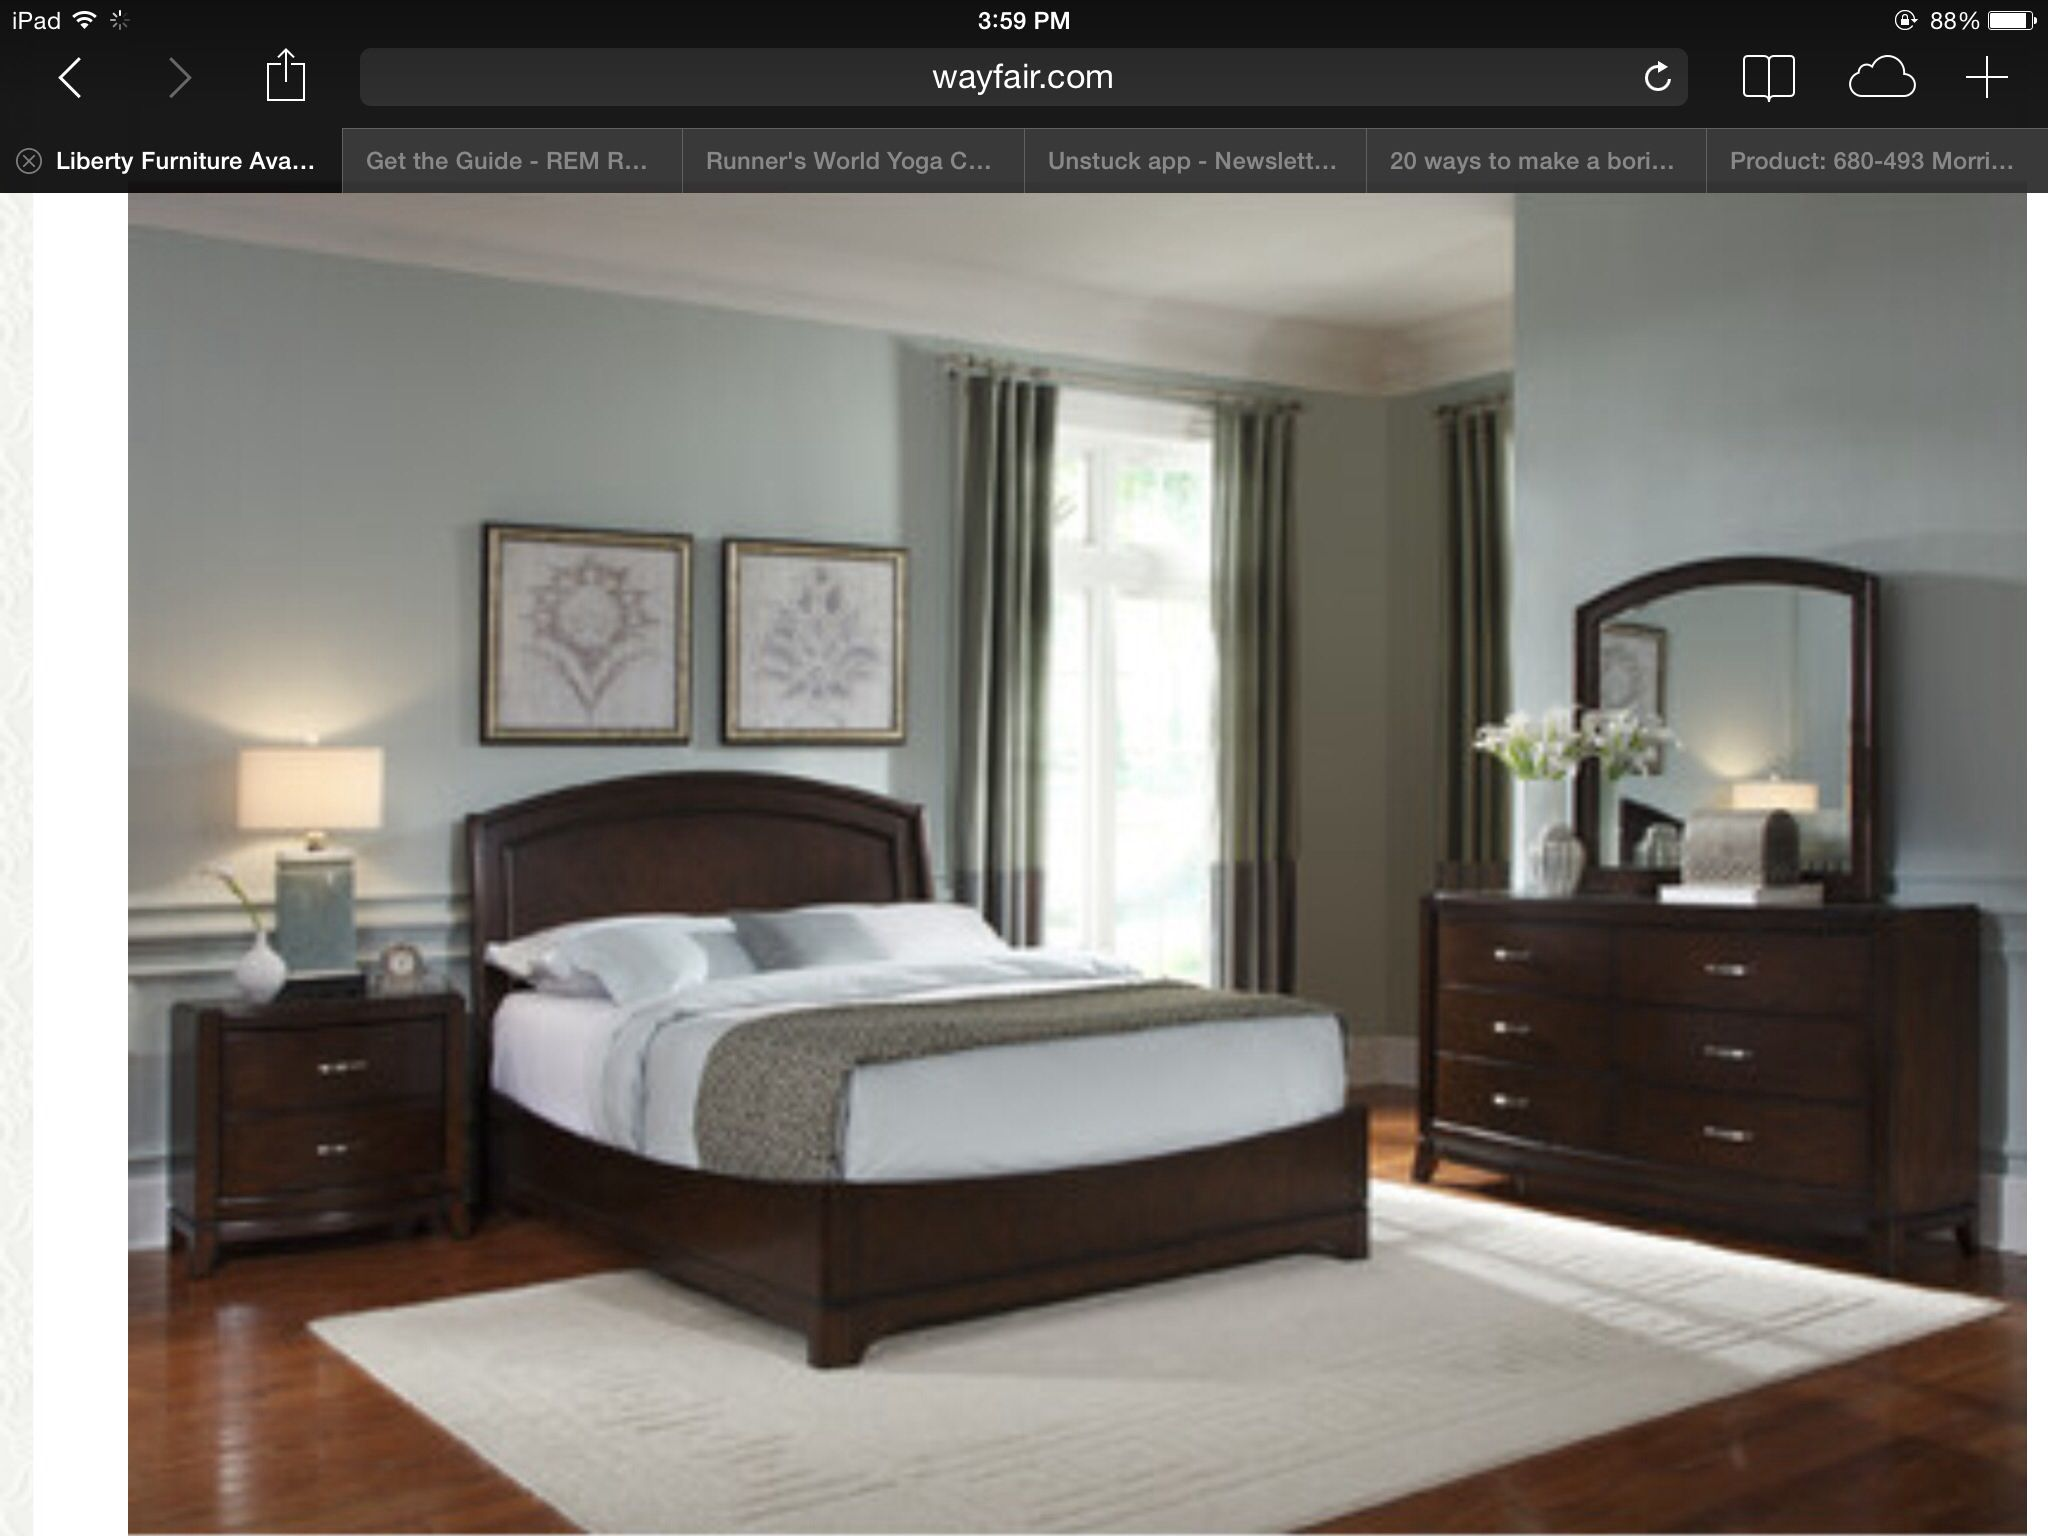 Bedroom Impressive Wayfair Beds For Bedroom Furniture: Avalon Bedroom Furniture On Wayfair